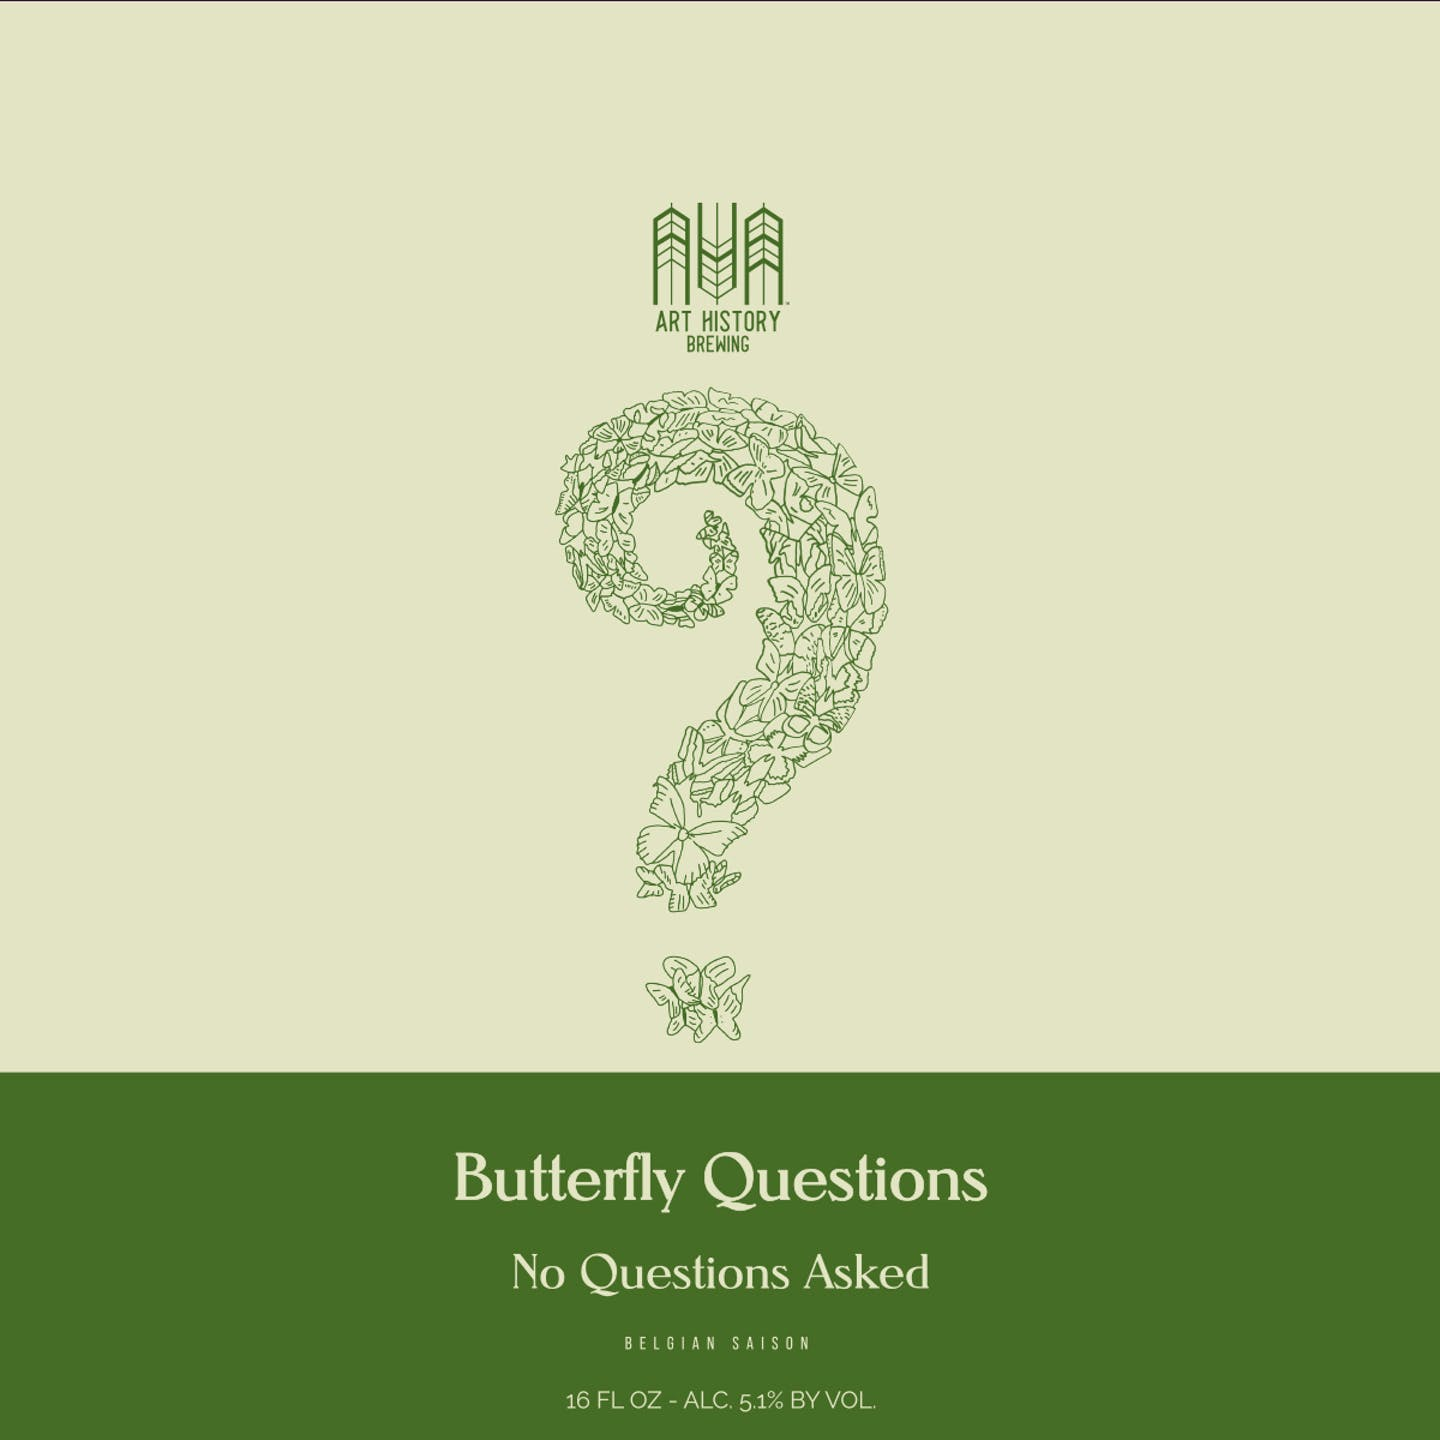 butterflyquestions-noquestionsasked